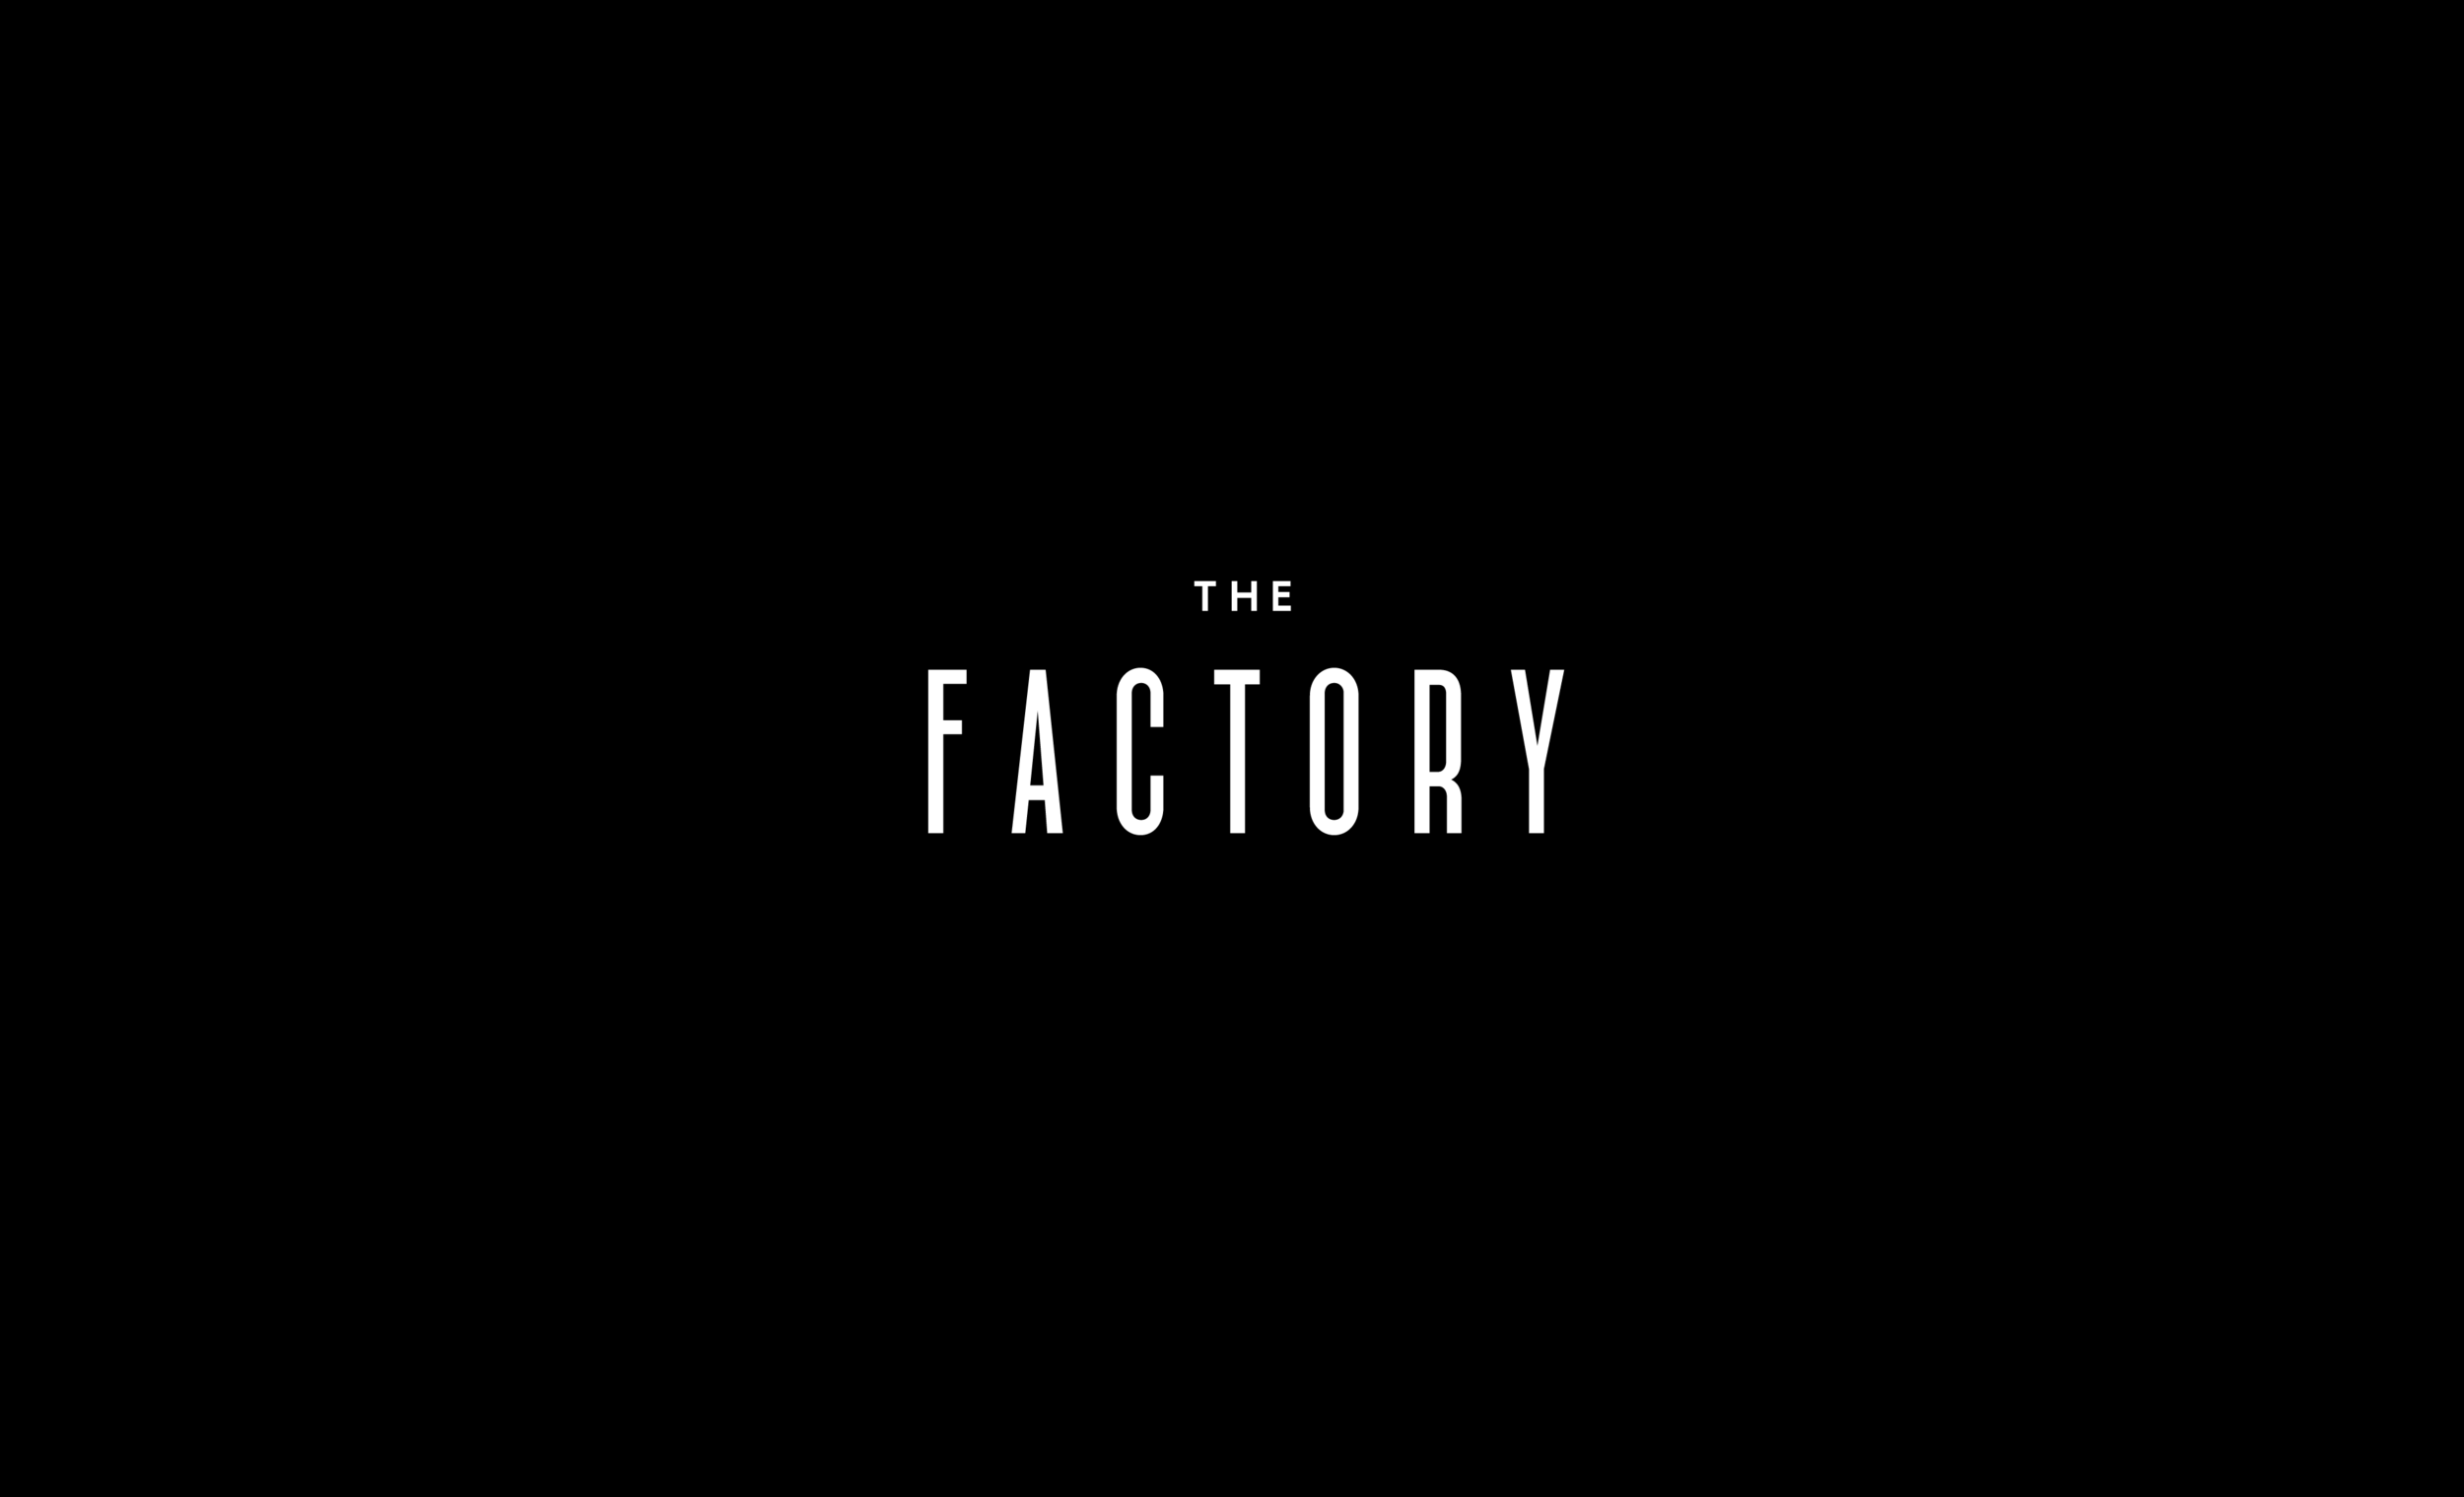 thefactory-design1@2x.png